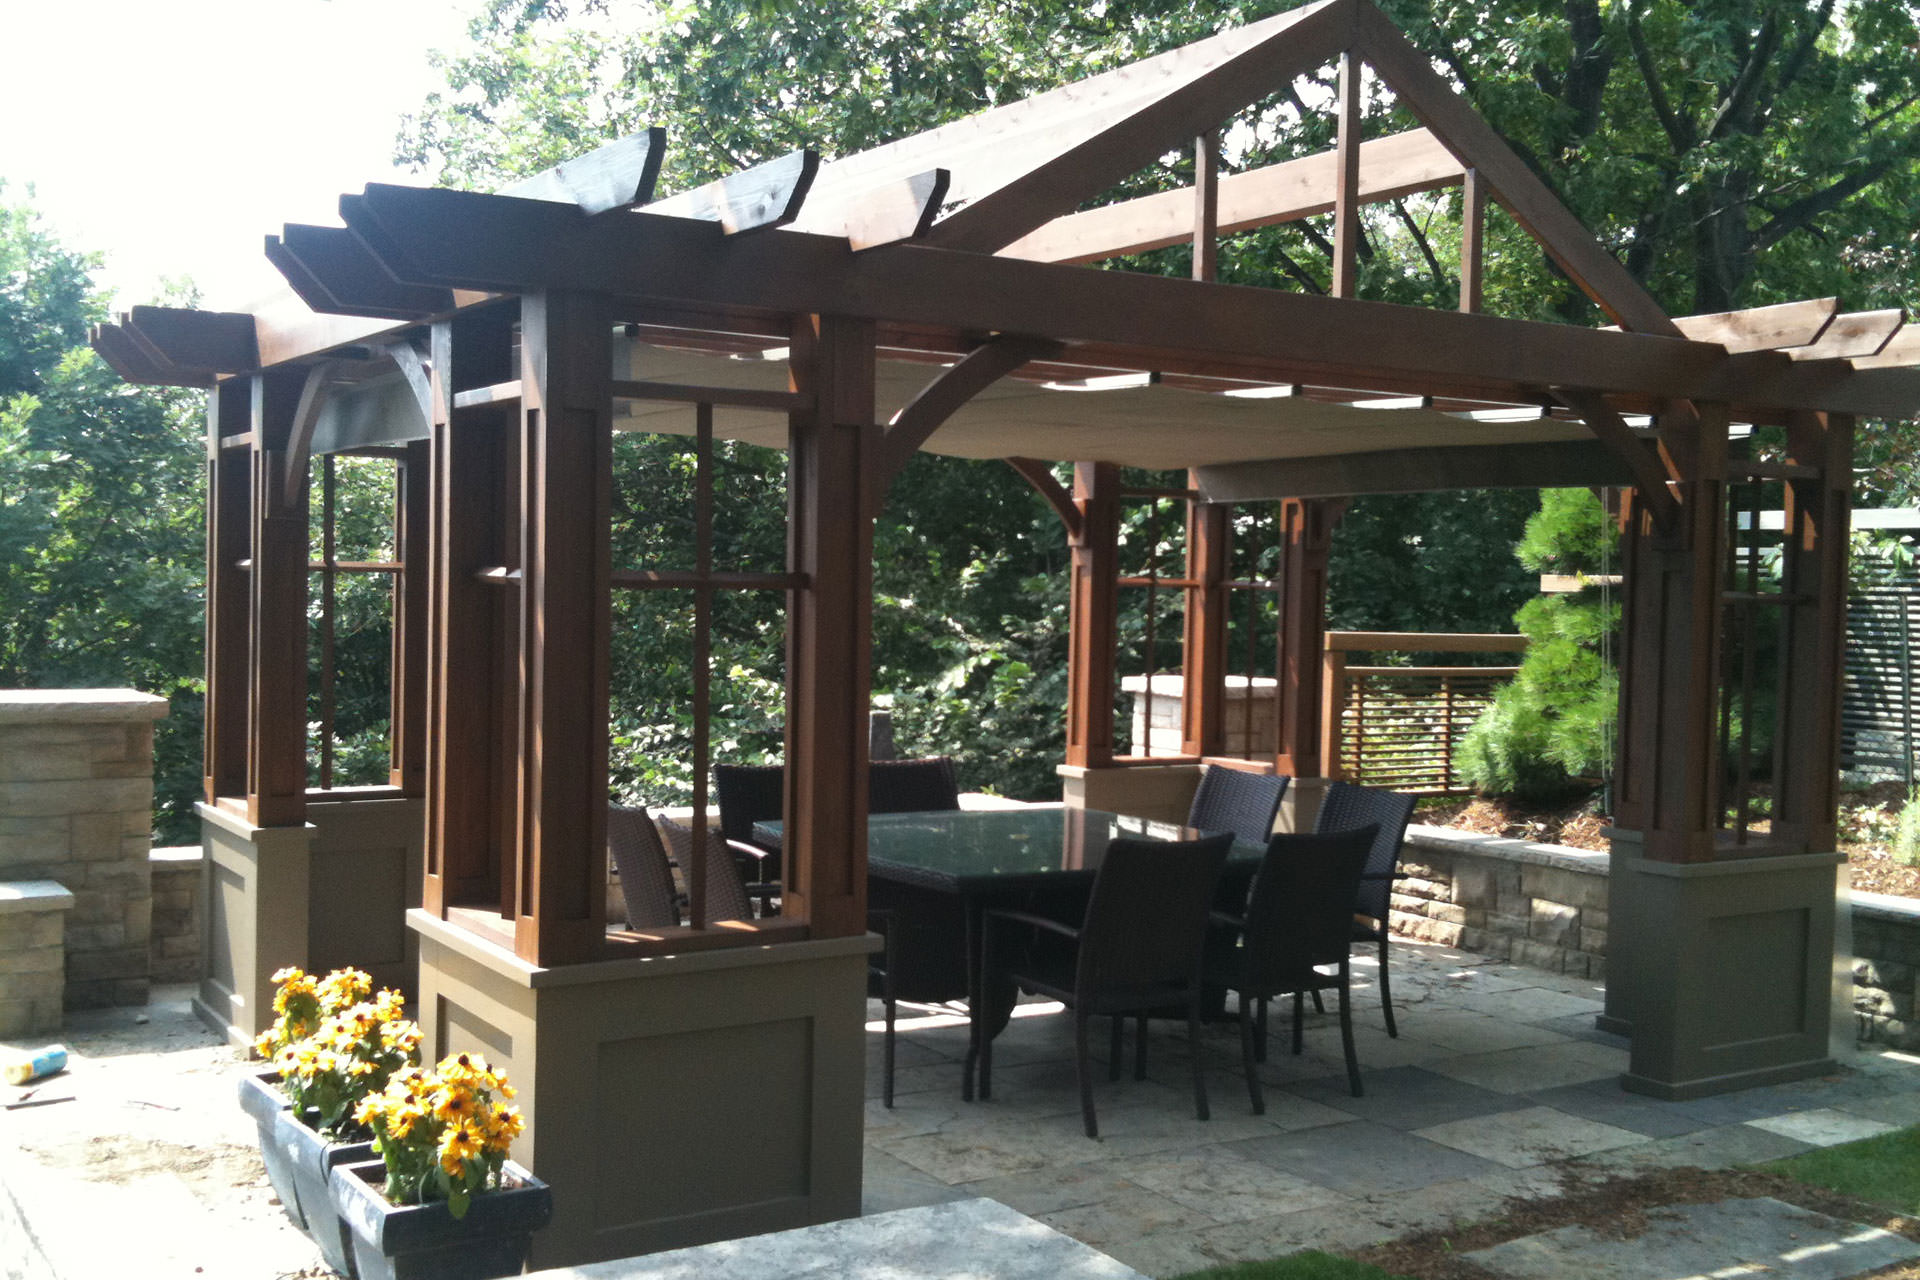 Roof Design Ideas: Pergola Roof Ideas: What You Need To Know